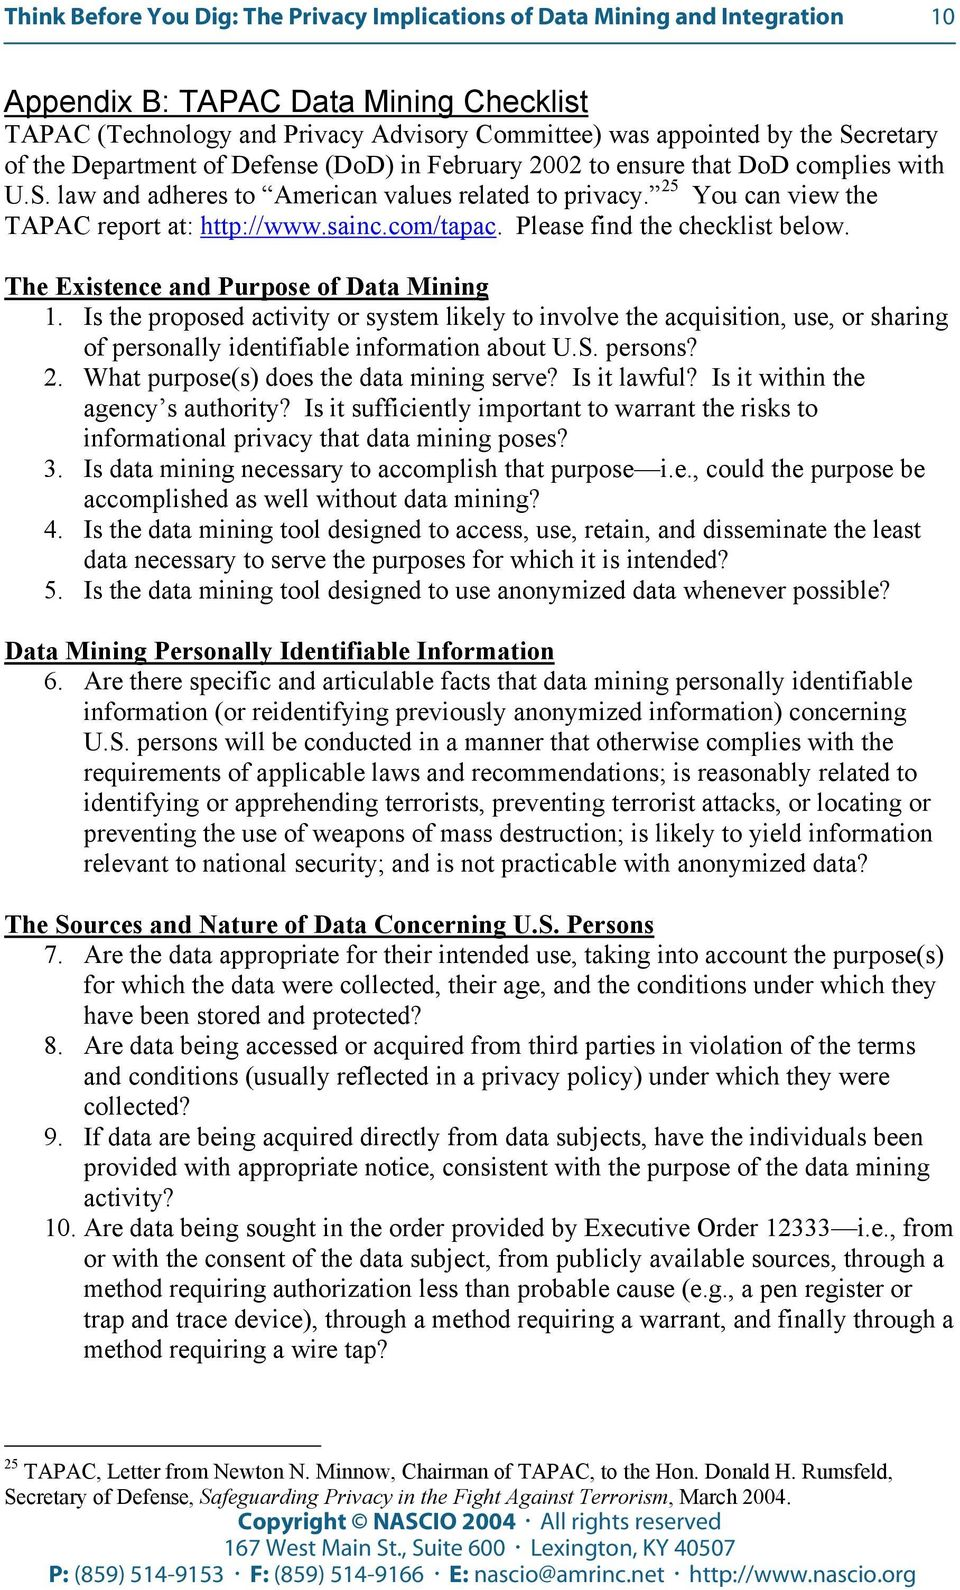 25 You can view the TAPAC report at: http://www.sainc.com/tapac. Please find the checklist below. The Existence and Purpose of Data Mining 1.